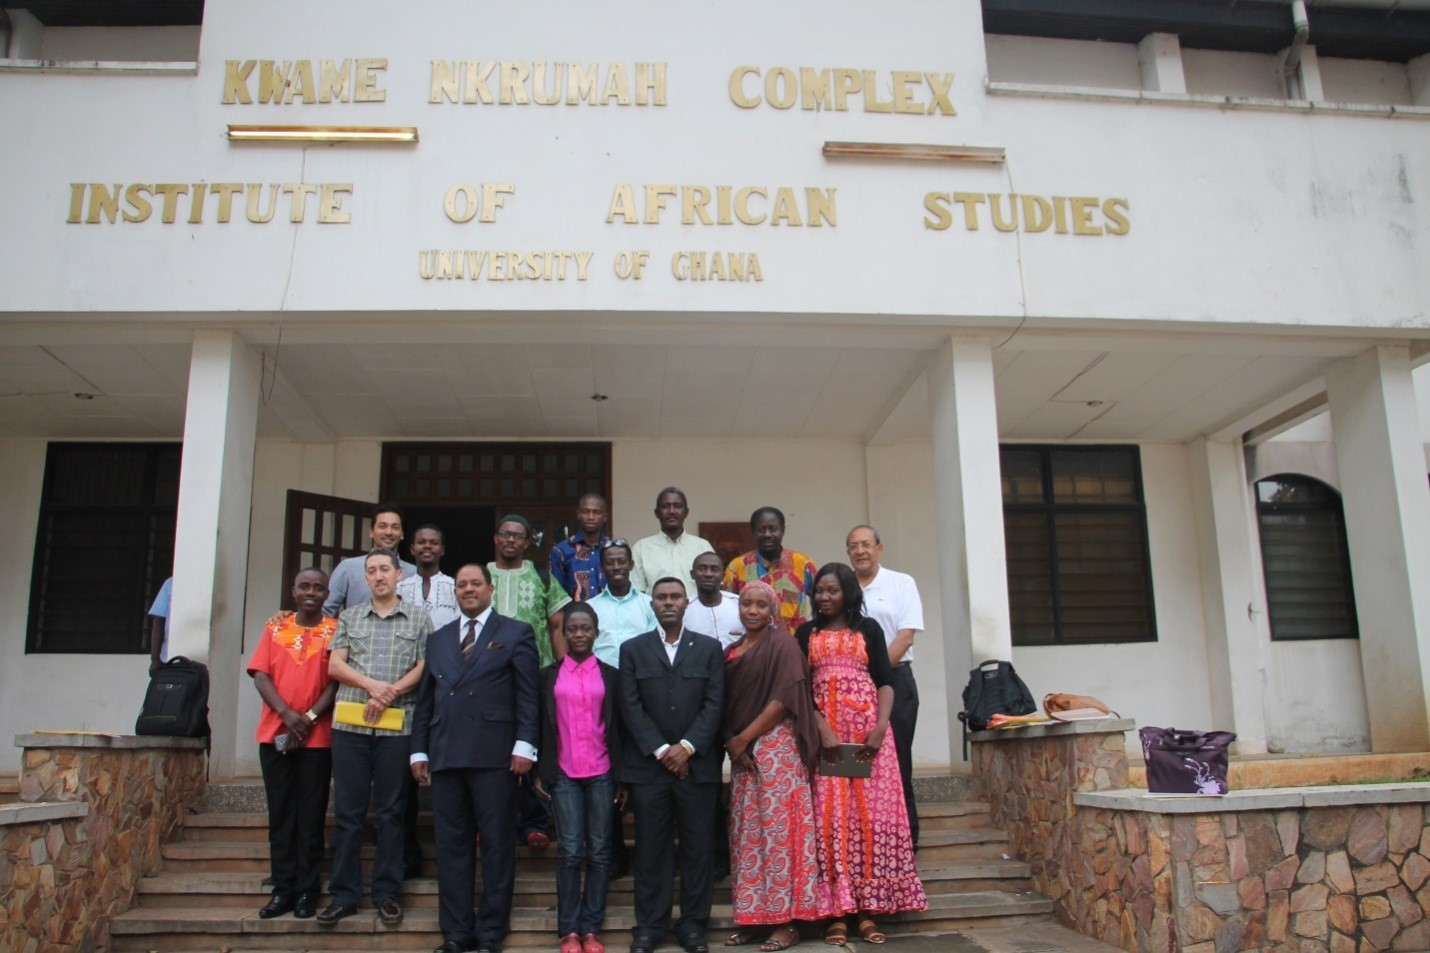 Ambassador Mussie Hailu at the IARJ conference with participants, 27 July 2016, Accra, Ghana. Photo: Mussie Hailu